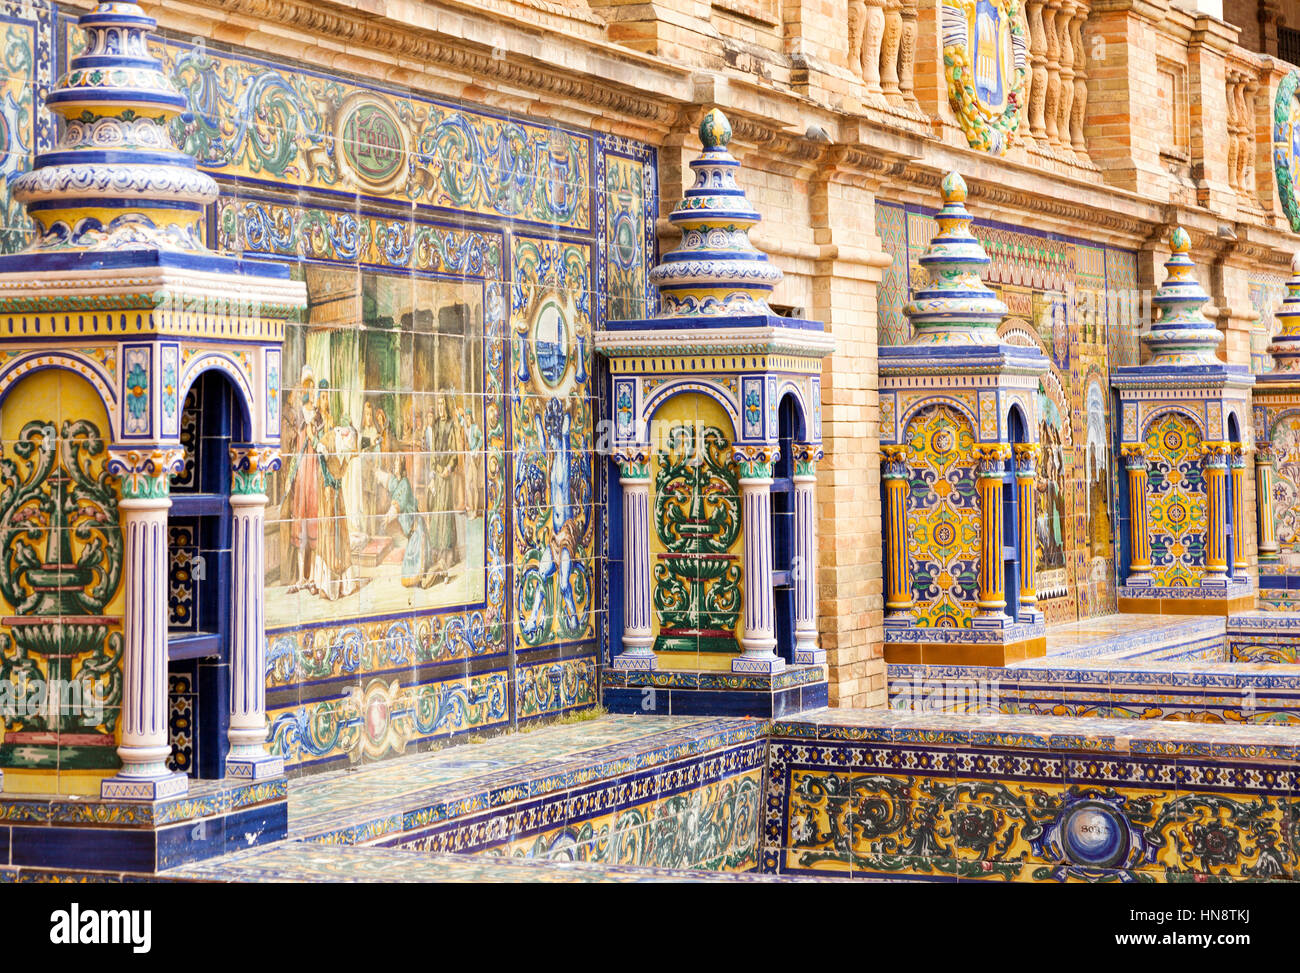 Seville spain april 30 2016 detail of the artistic ceramic seville spain april 30 2016 detail of the artistic ceramic tile work of province alcoves at plaza de espana dailygadgetfo Image collections